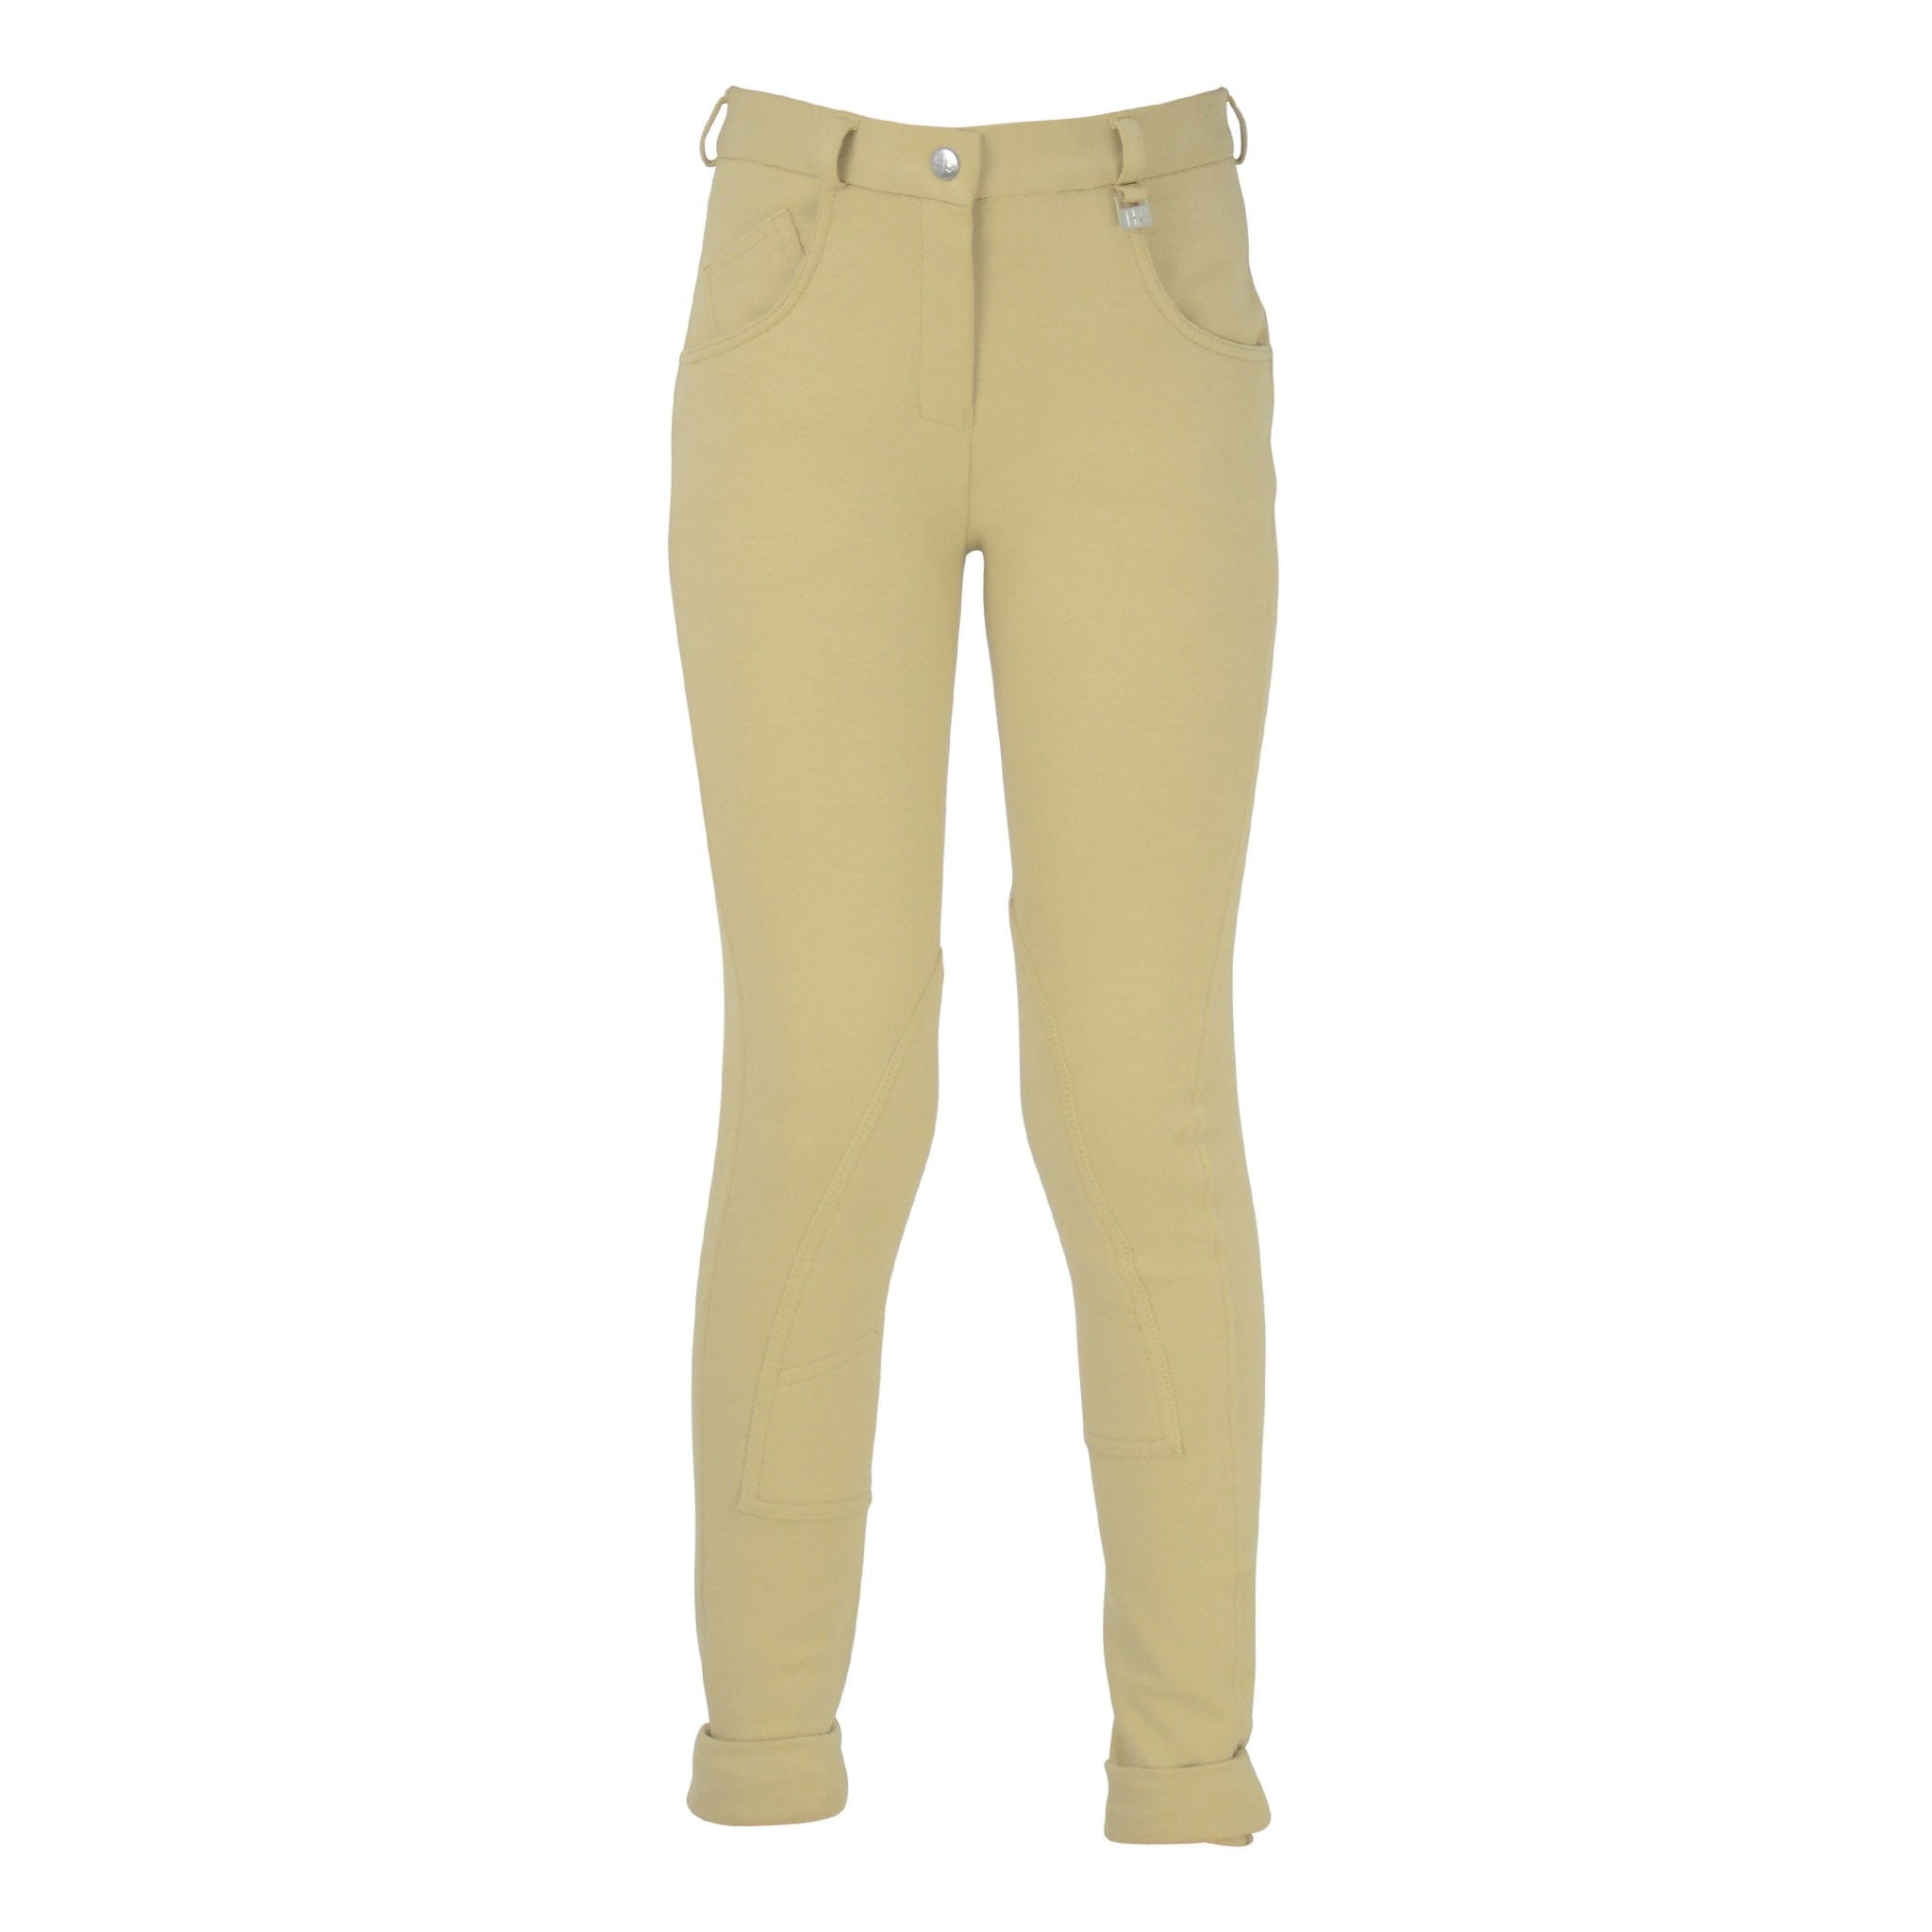 HyPerformance Burton Children's Jodhpurs in Beige Front View 11188